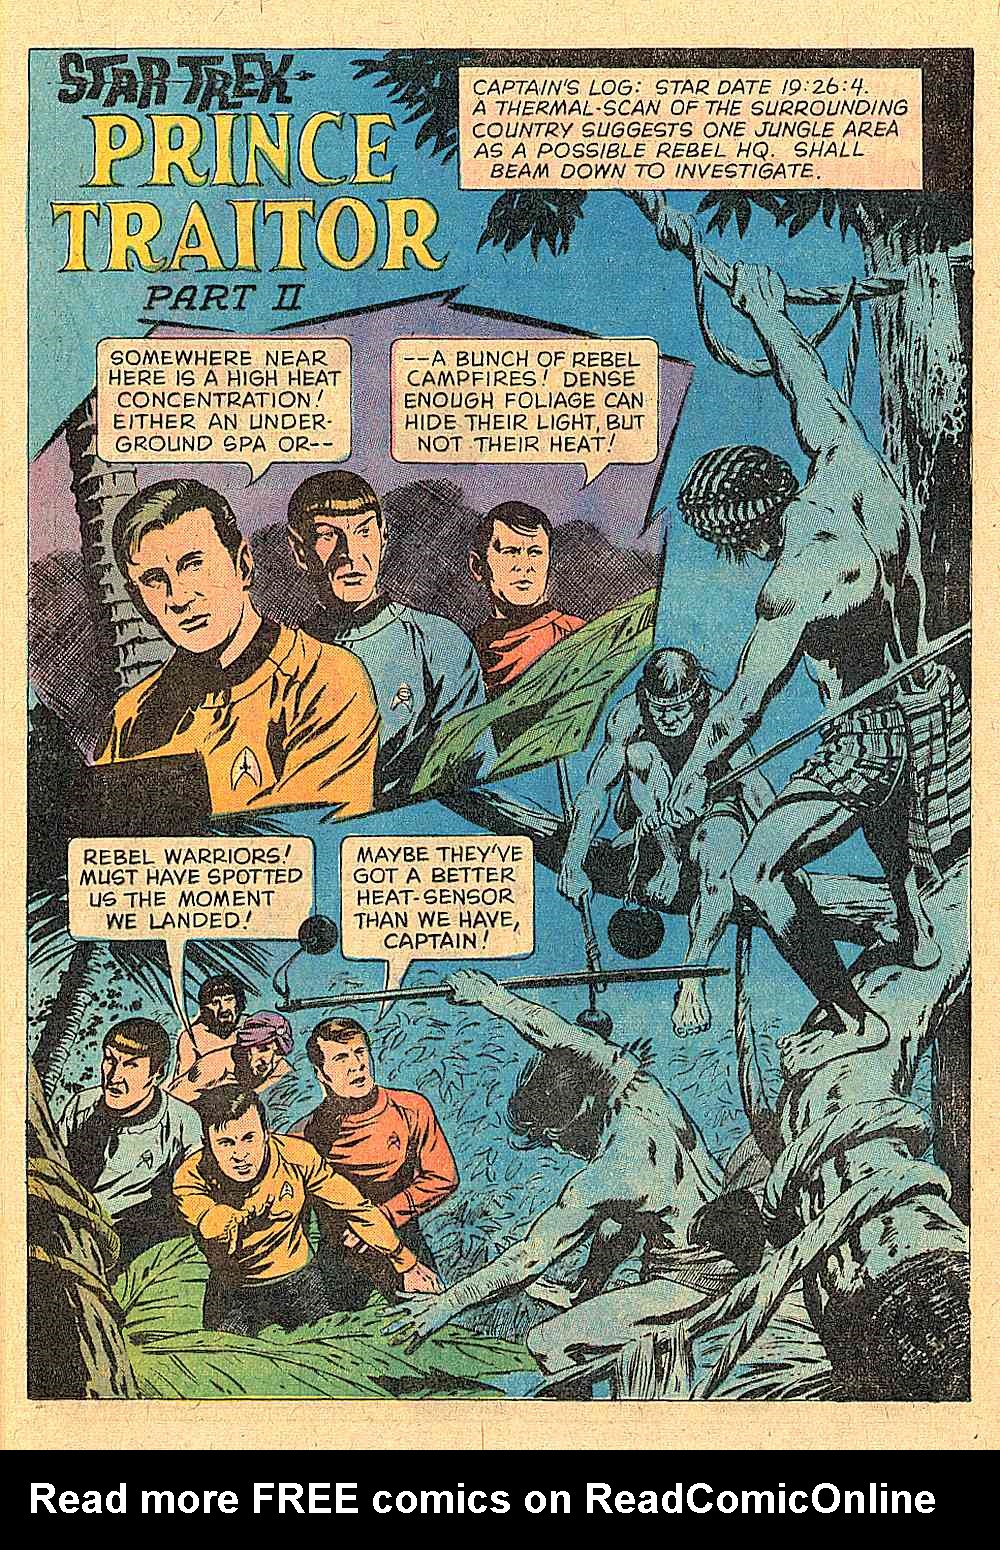 Star Trek (1967) #44 #44 - English 14